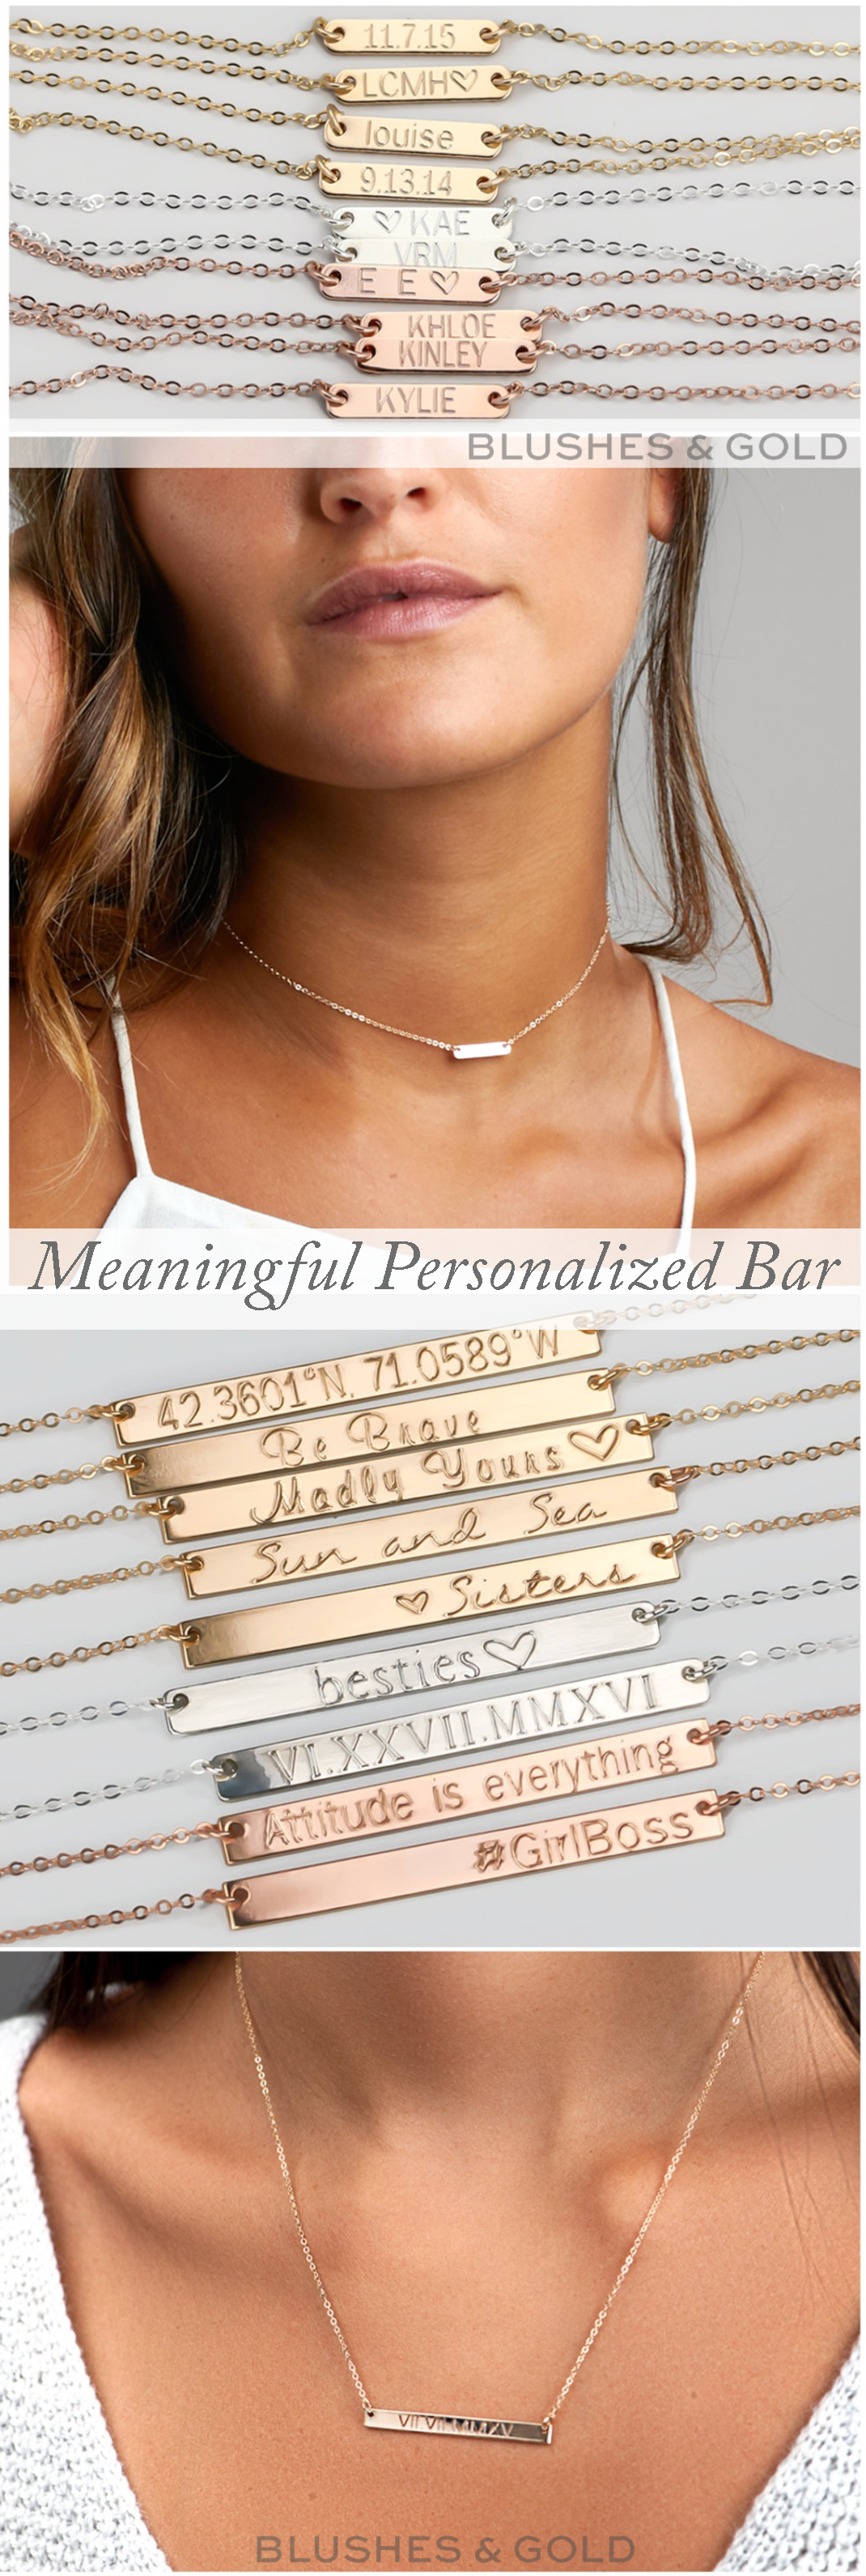 Awesome Personalized Idea Personalized Bar Necklace Bar Necklace Engraved Necklace Engrava With Images Bar Necklace Personalized Custom Name Necklace Engraved Necklace